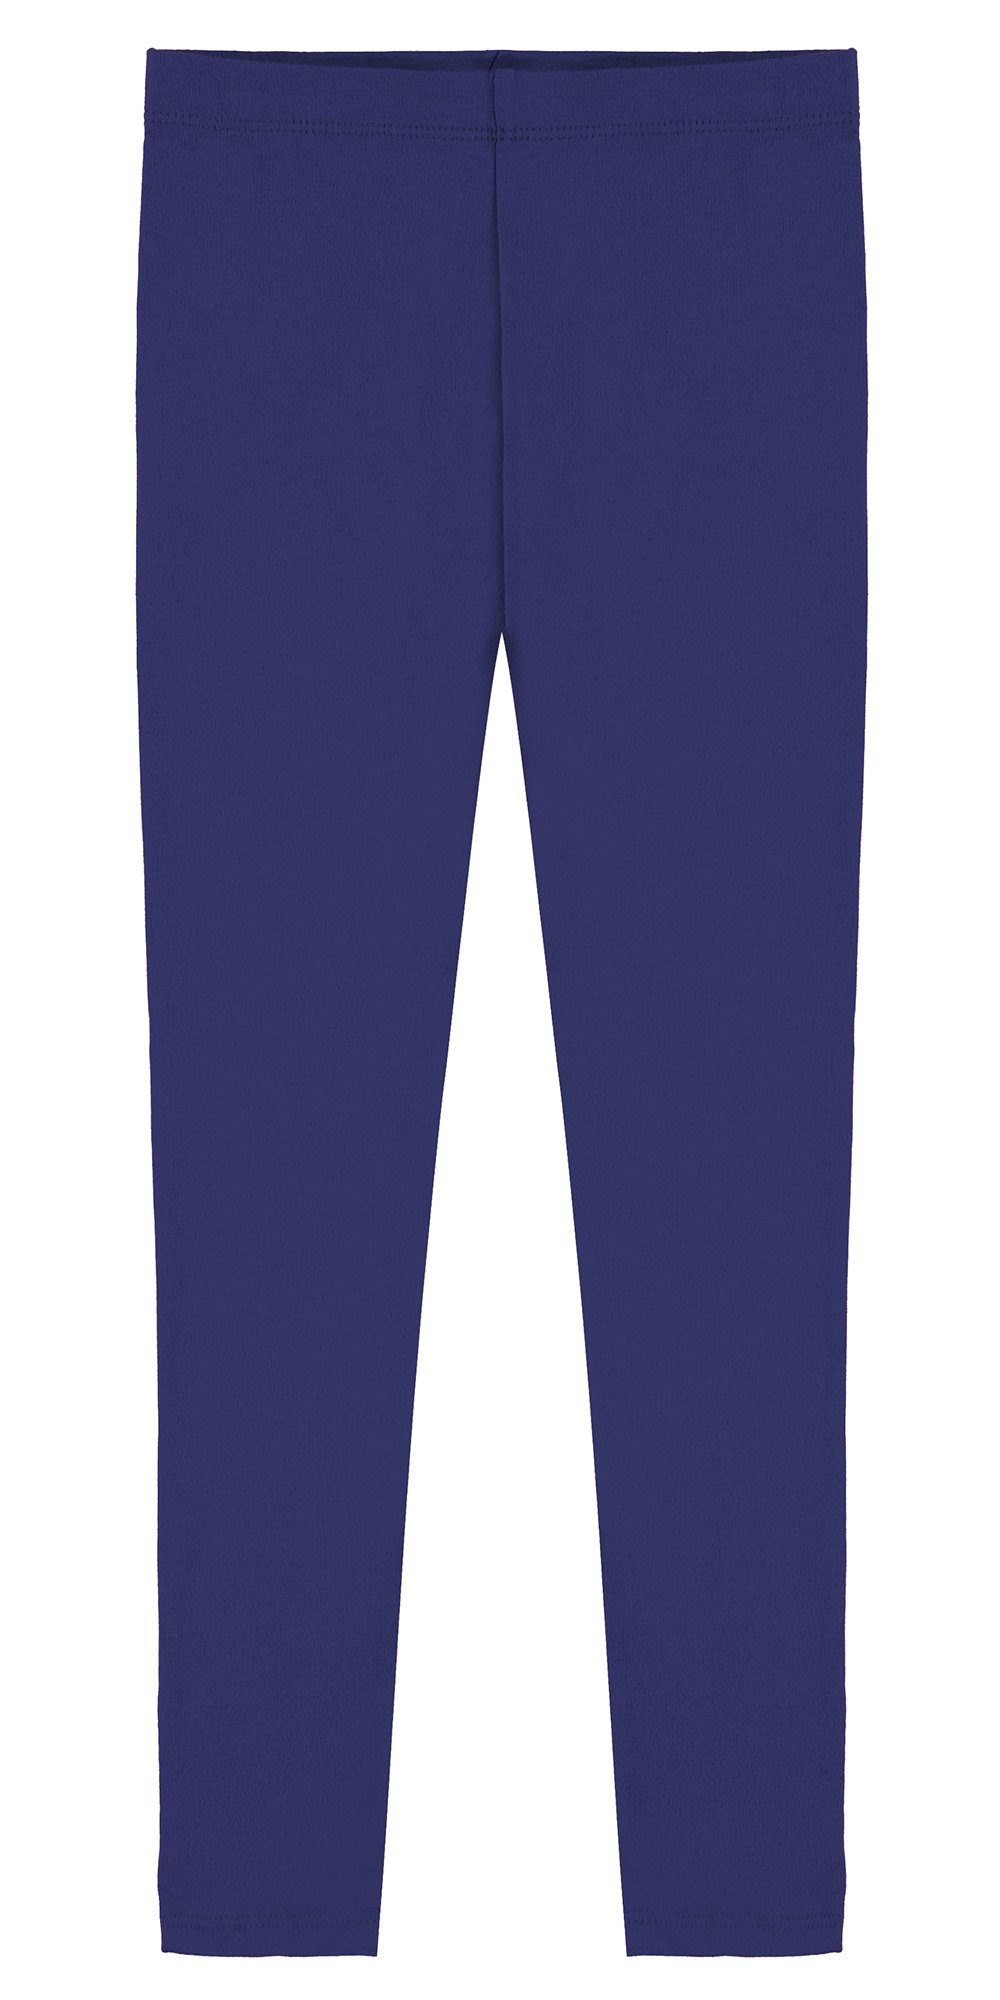 Popular Little Girl's Cotton Ankle Length Leggings - Royal Blue - 4